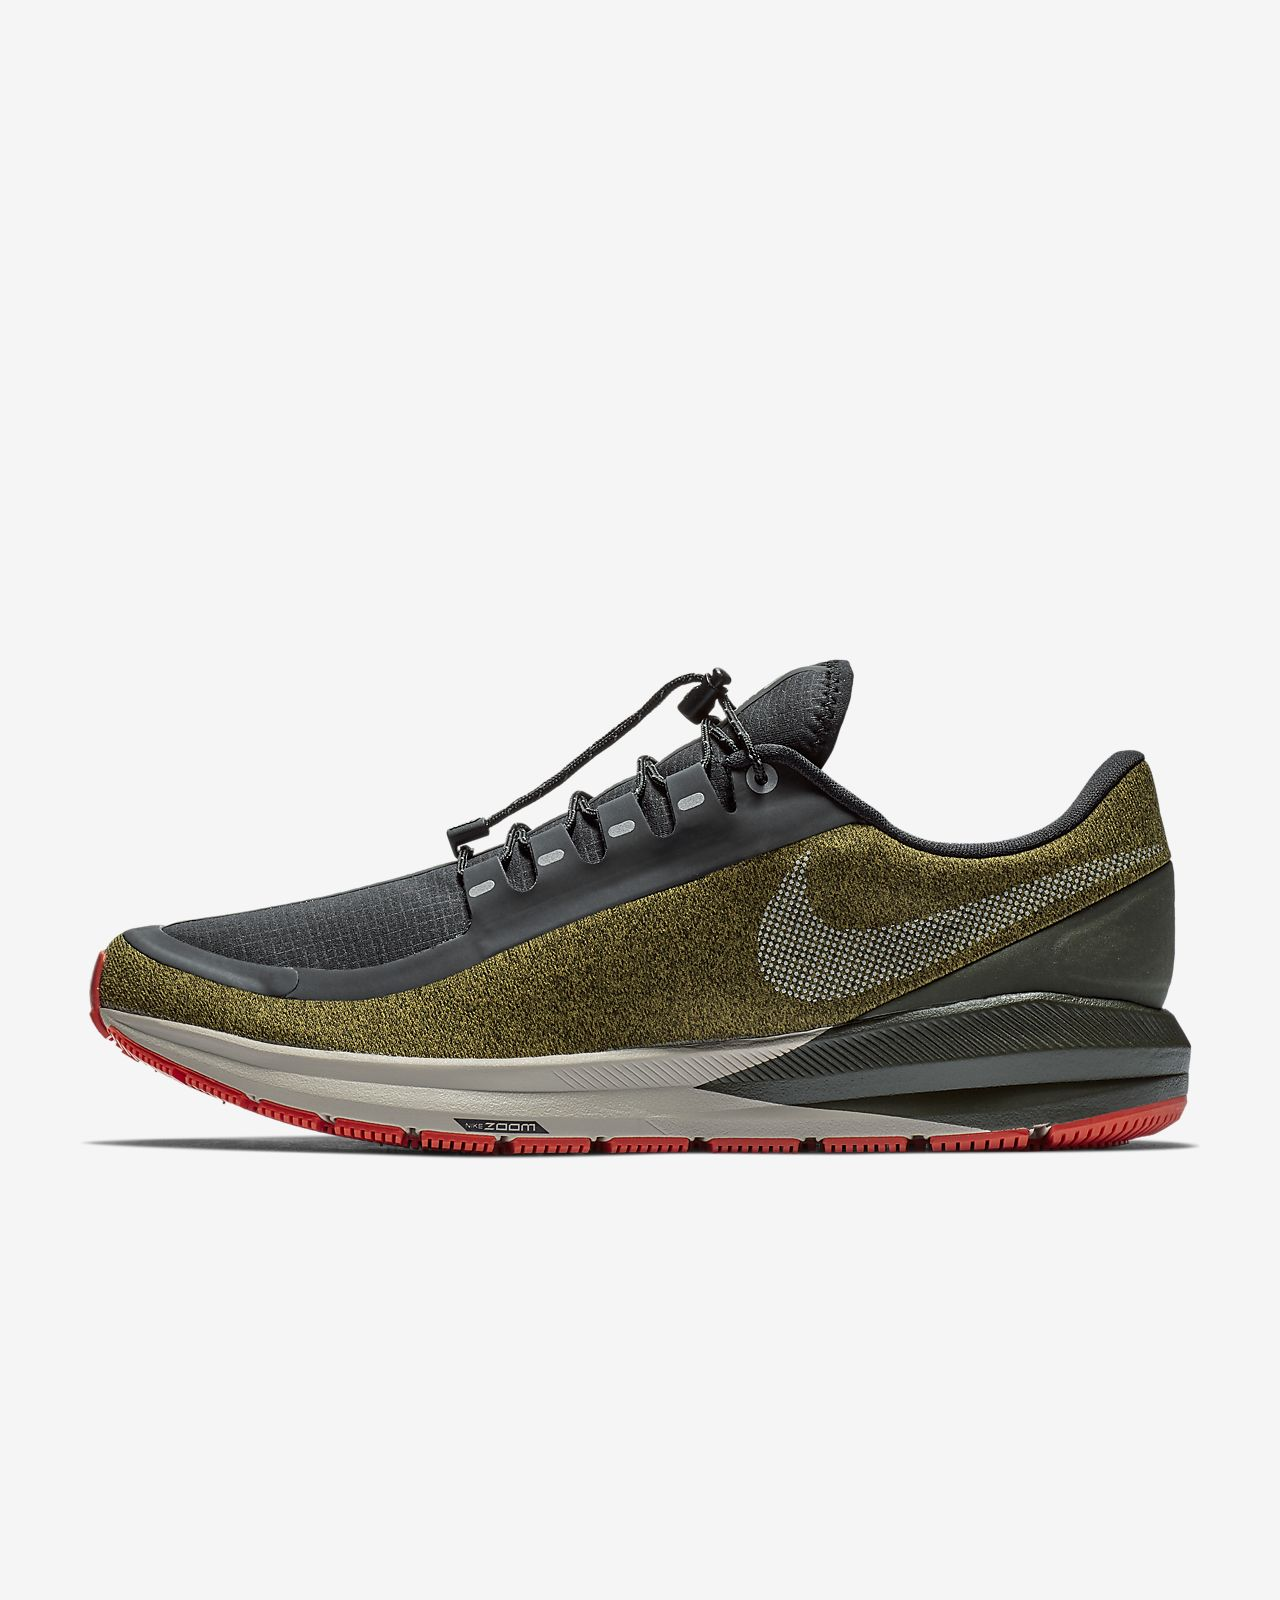 competitive price e6d11 24c5f ... Nike Air Zoom Structure 22 Shield Water-Repellent Herren-Laufschuh